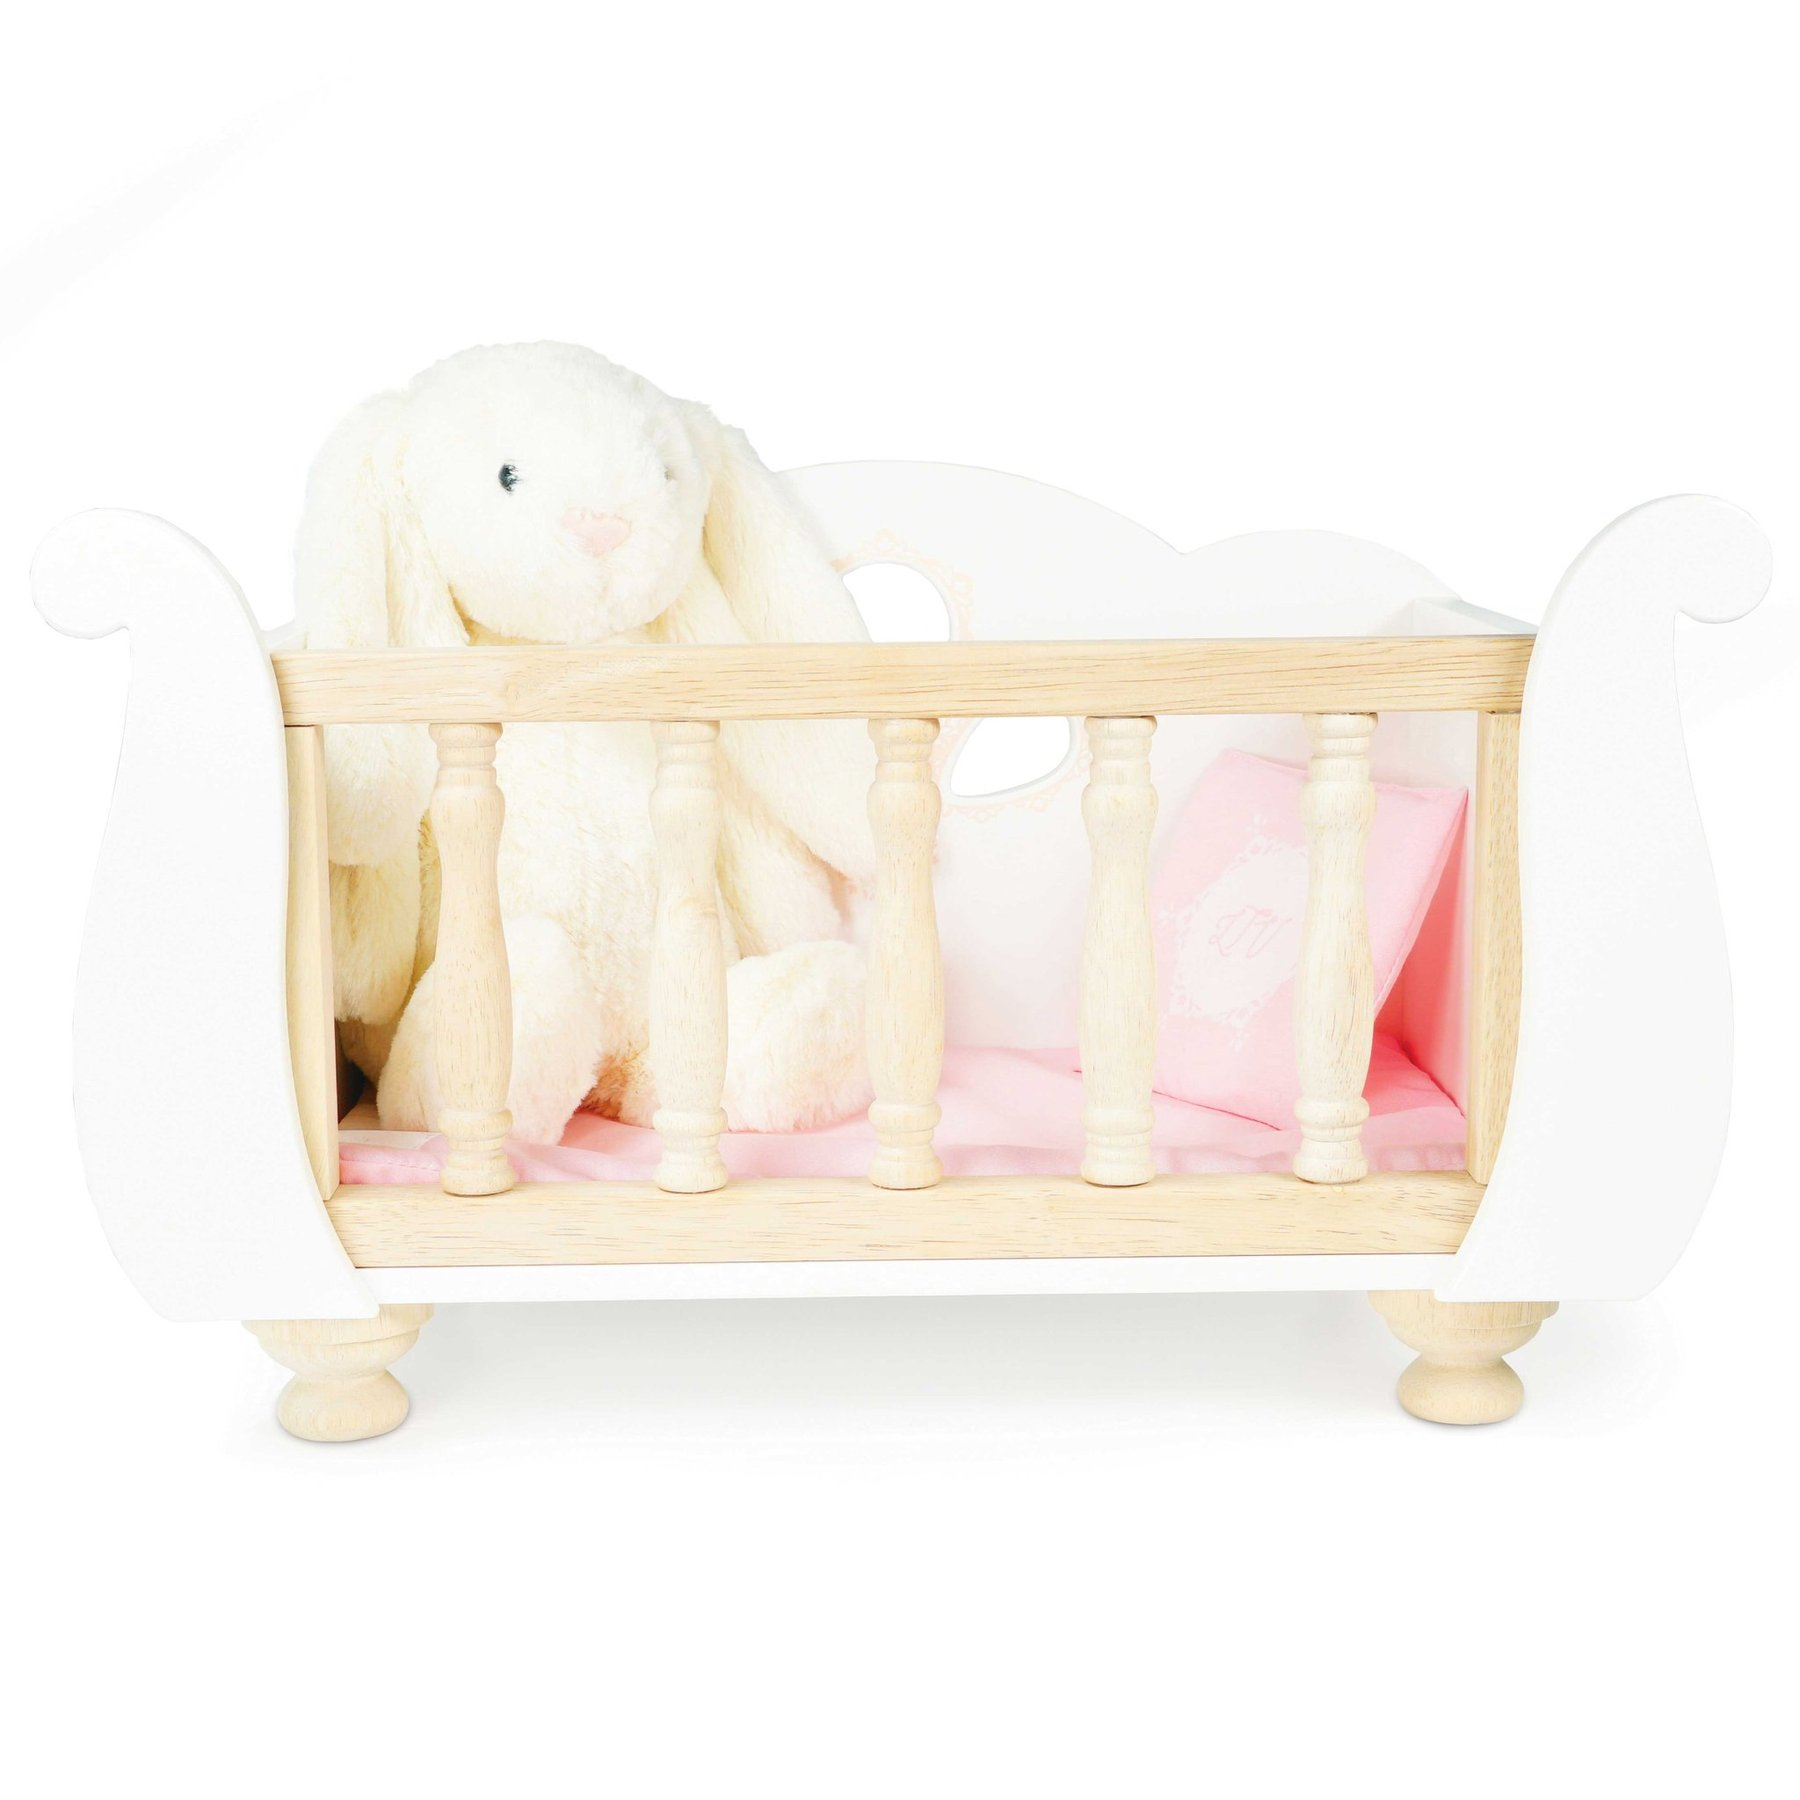 LE TOY VAN WOODEN SLEIGH DOLL COT.